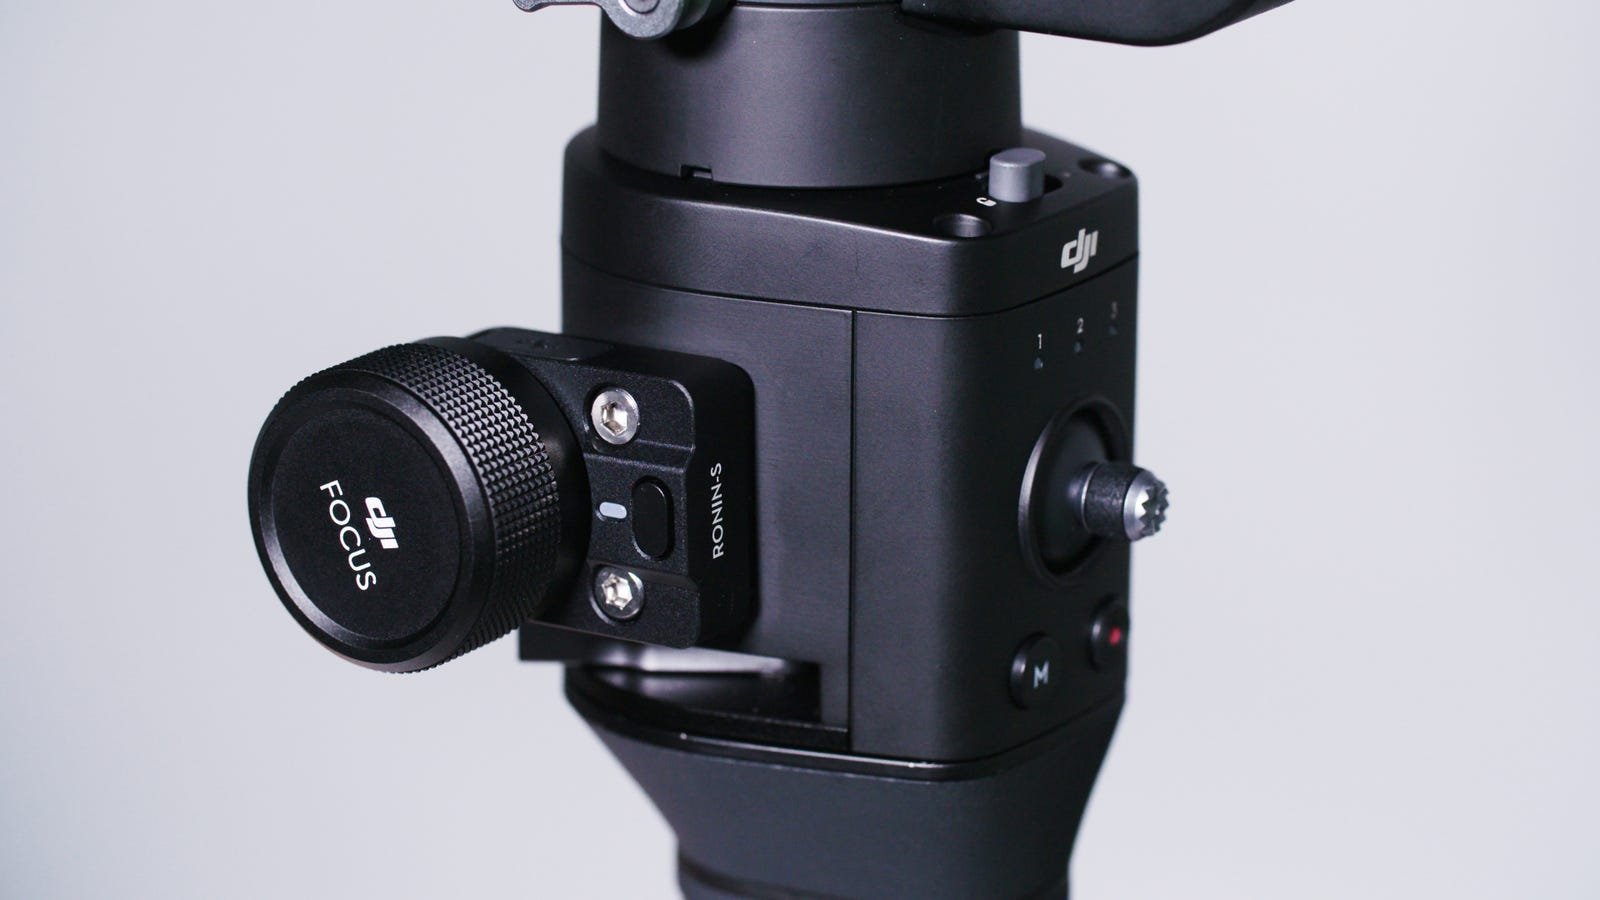 The optional Focus Wheel lets you add an external motor for remote focusing.